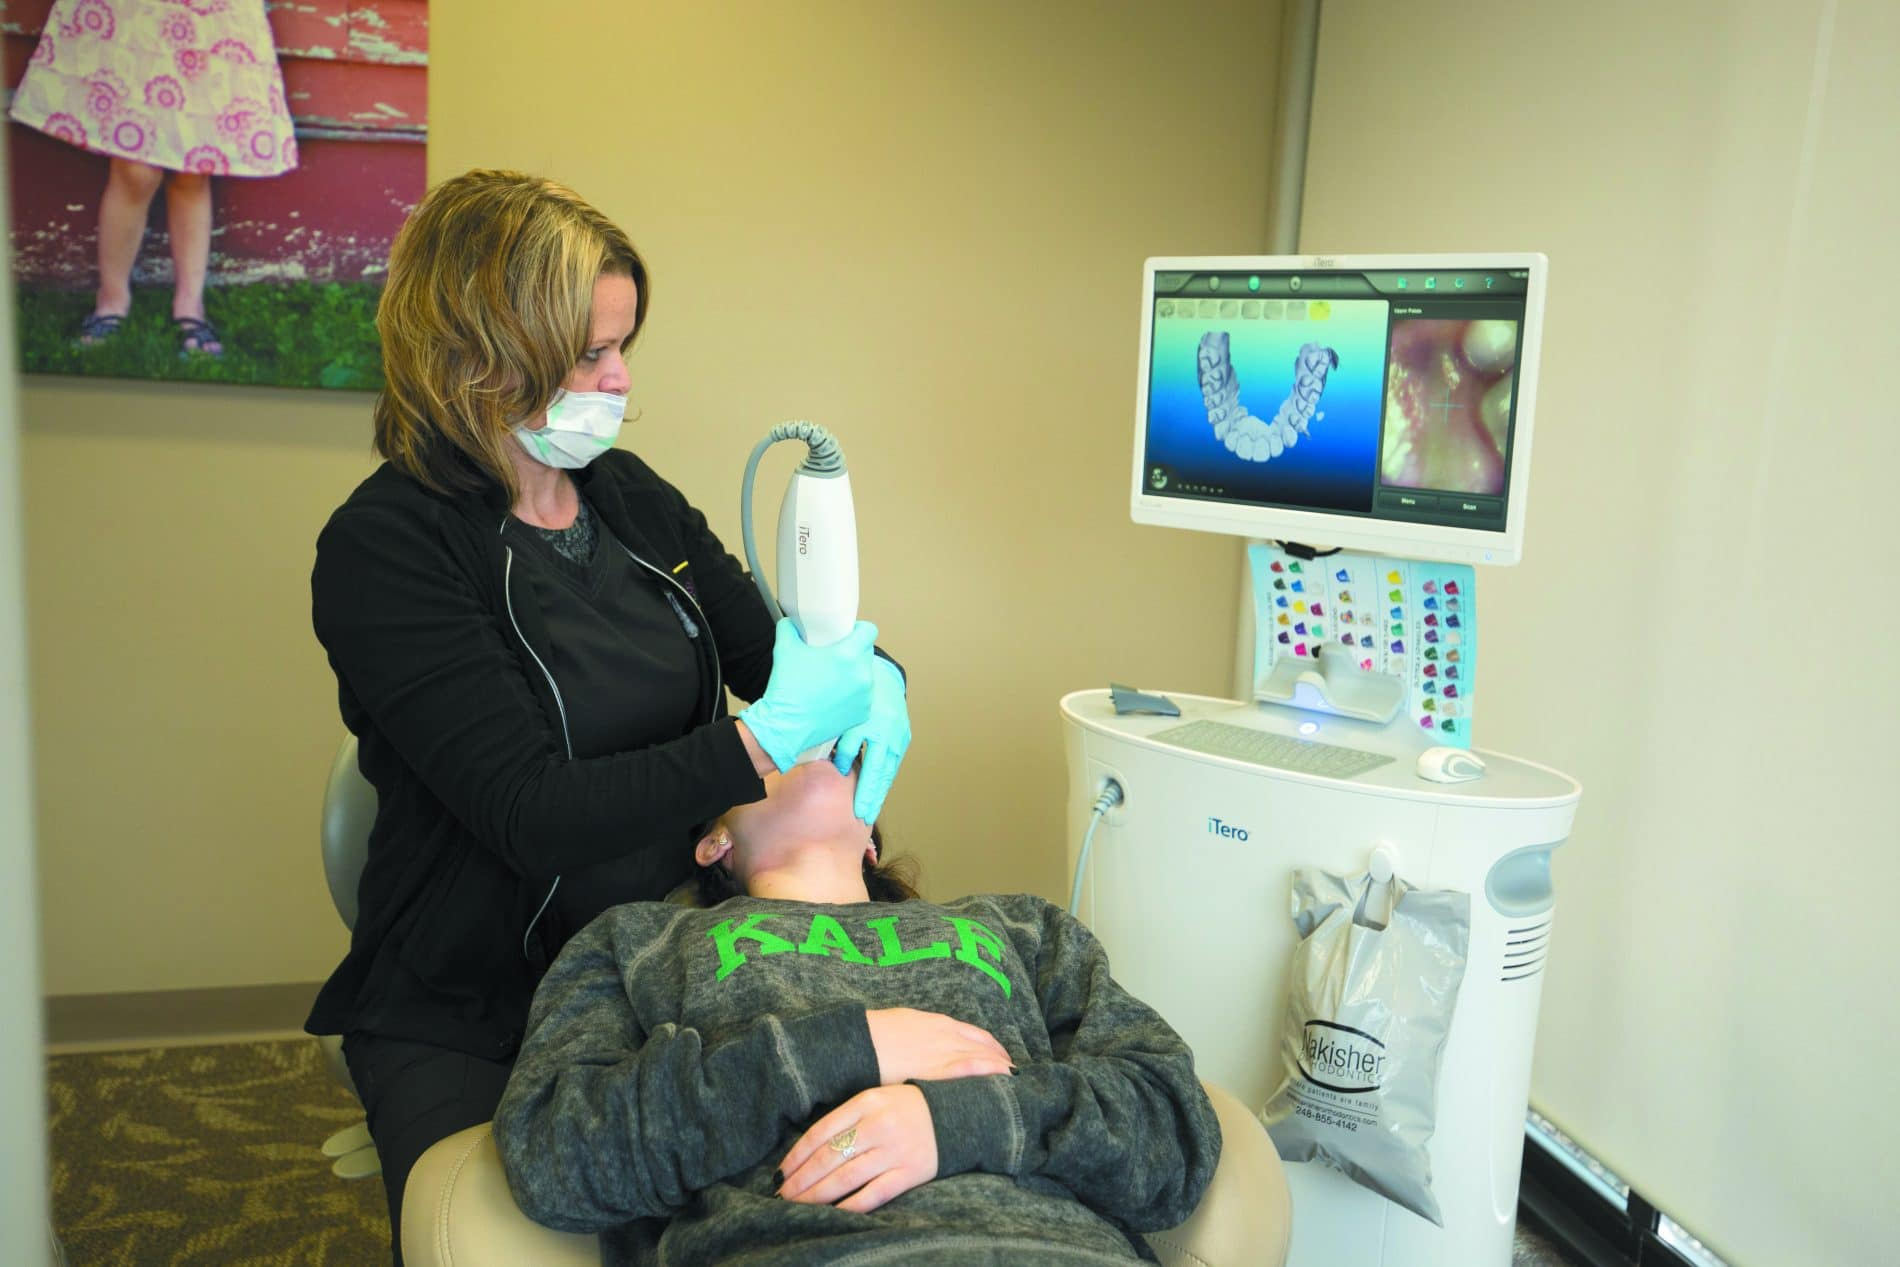 Dr. Andrea Nakisher uses an iTero scanner that is moved over the teeth to take fast, accurate digital impressions for Invisalign braces.